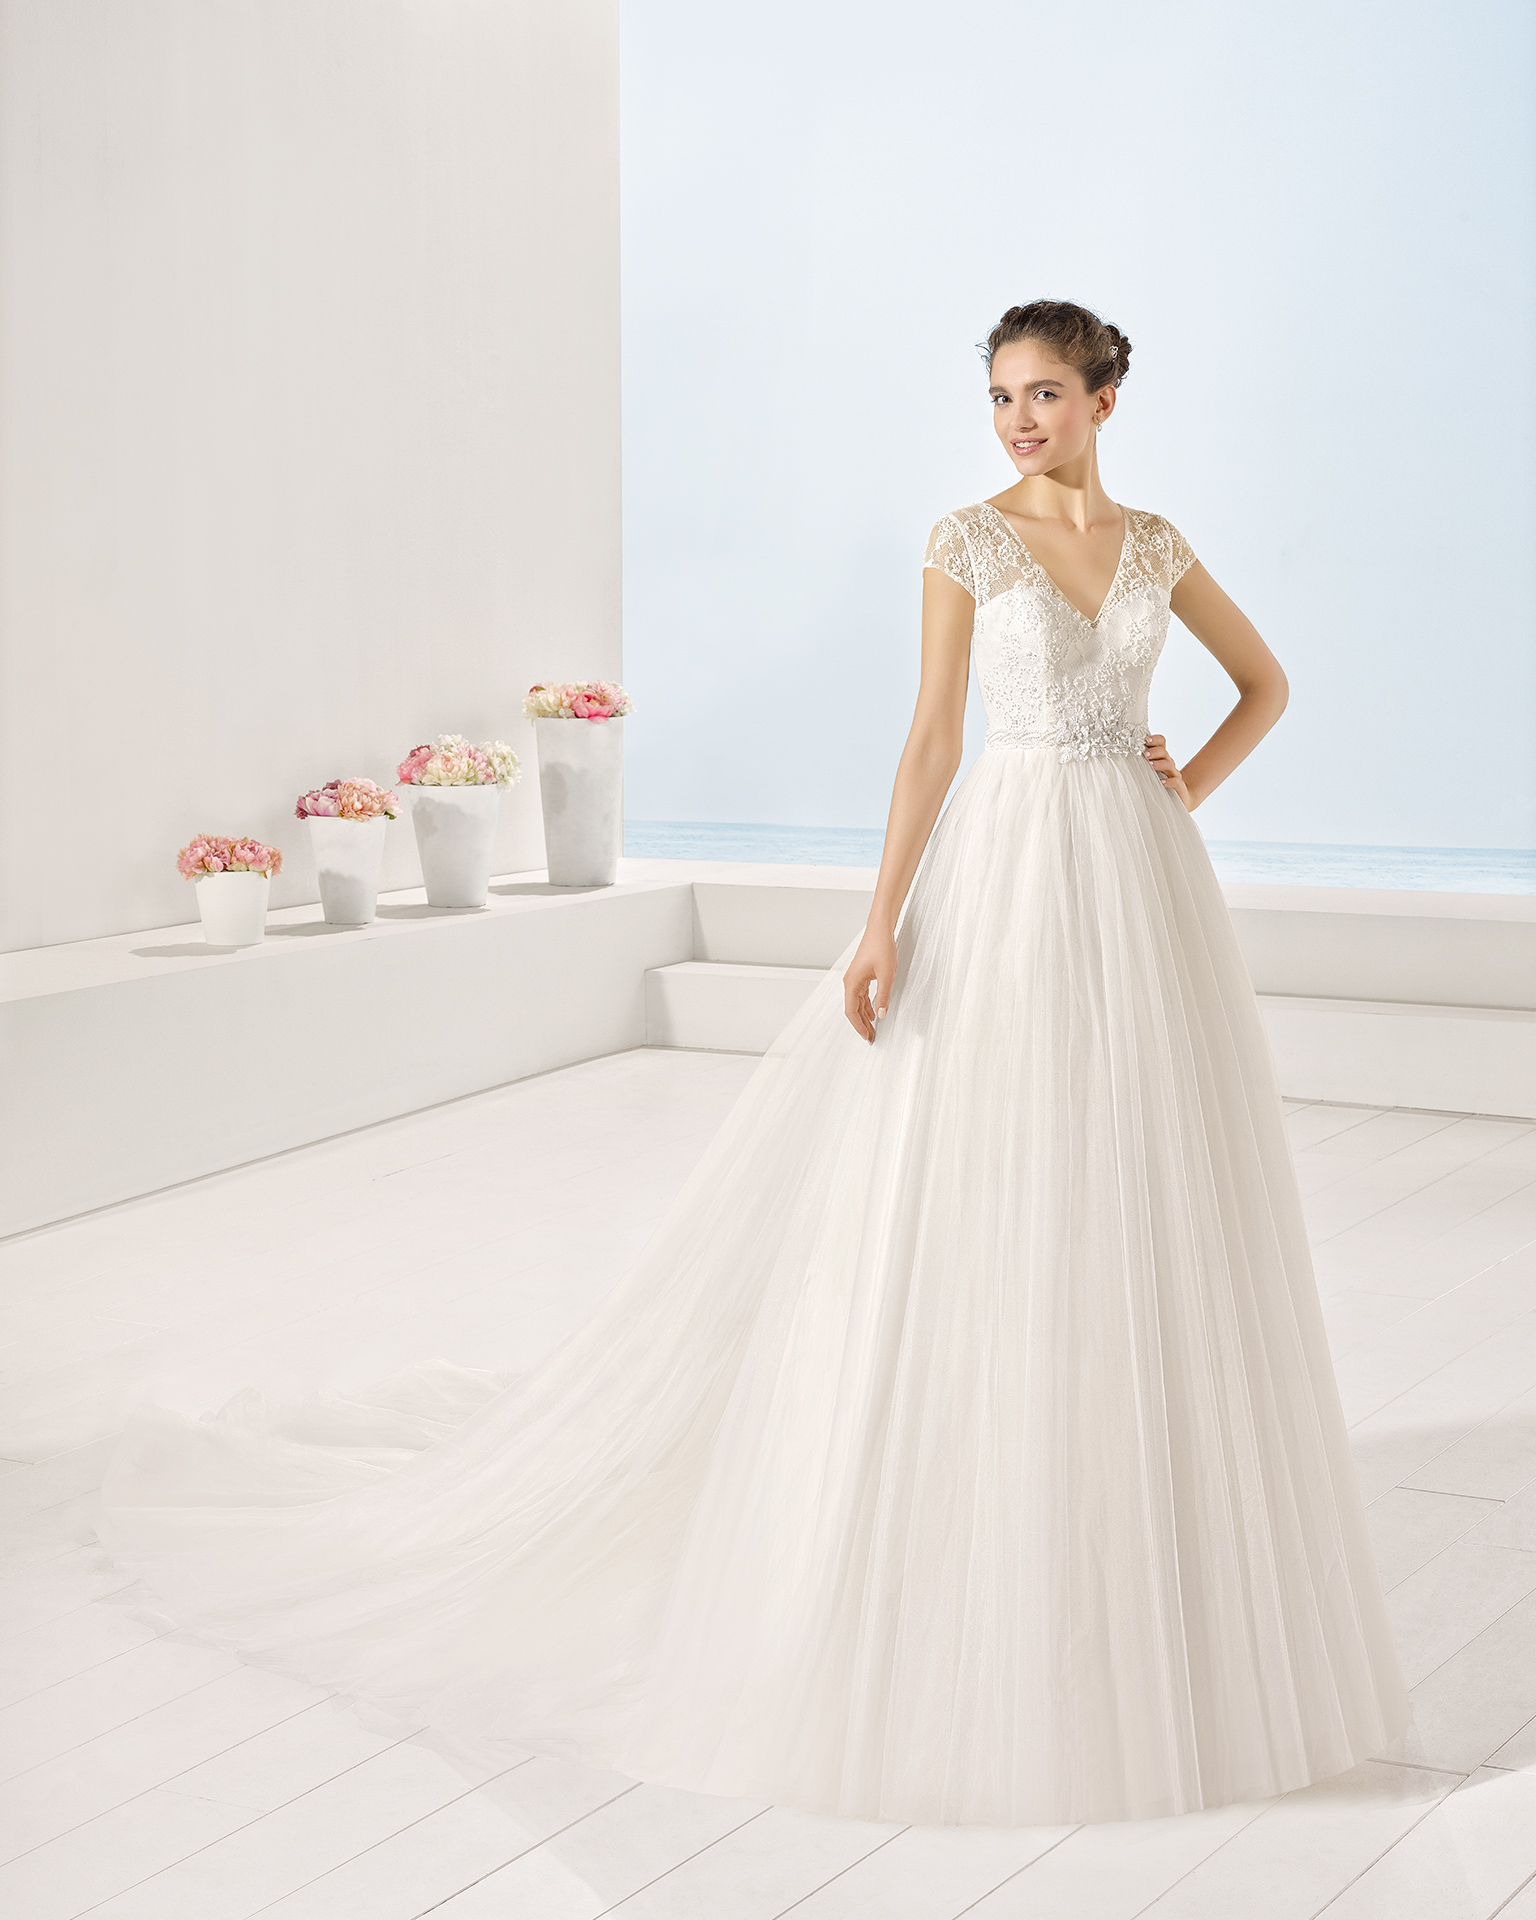 Yolanda wedding dress, Luna Novias 2017